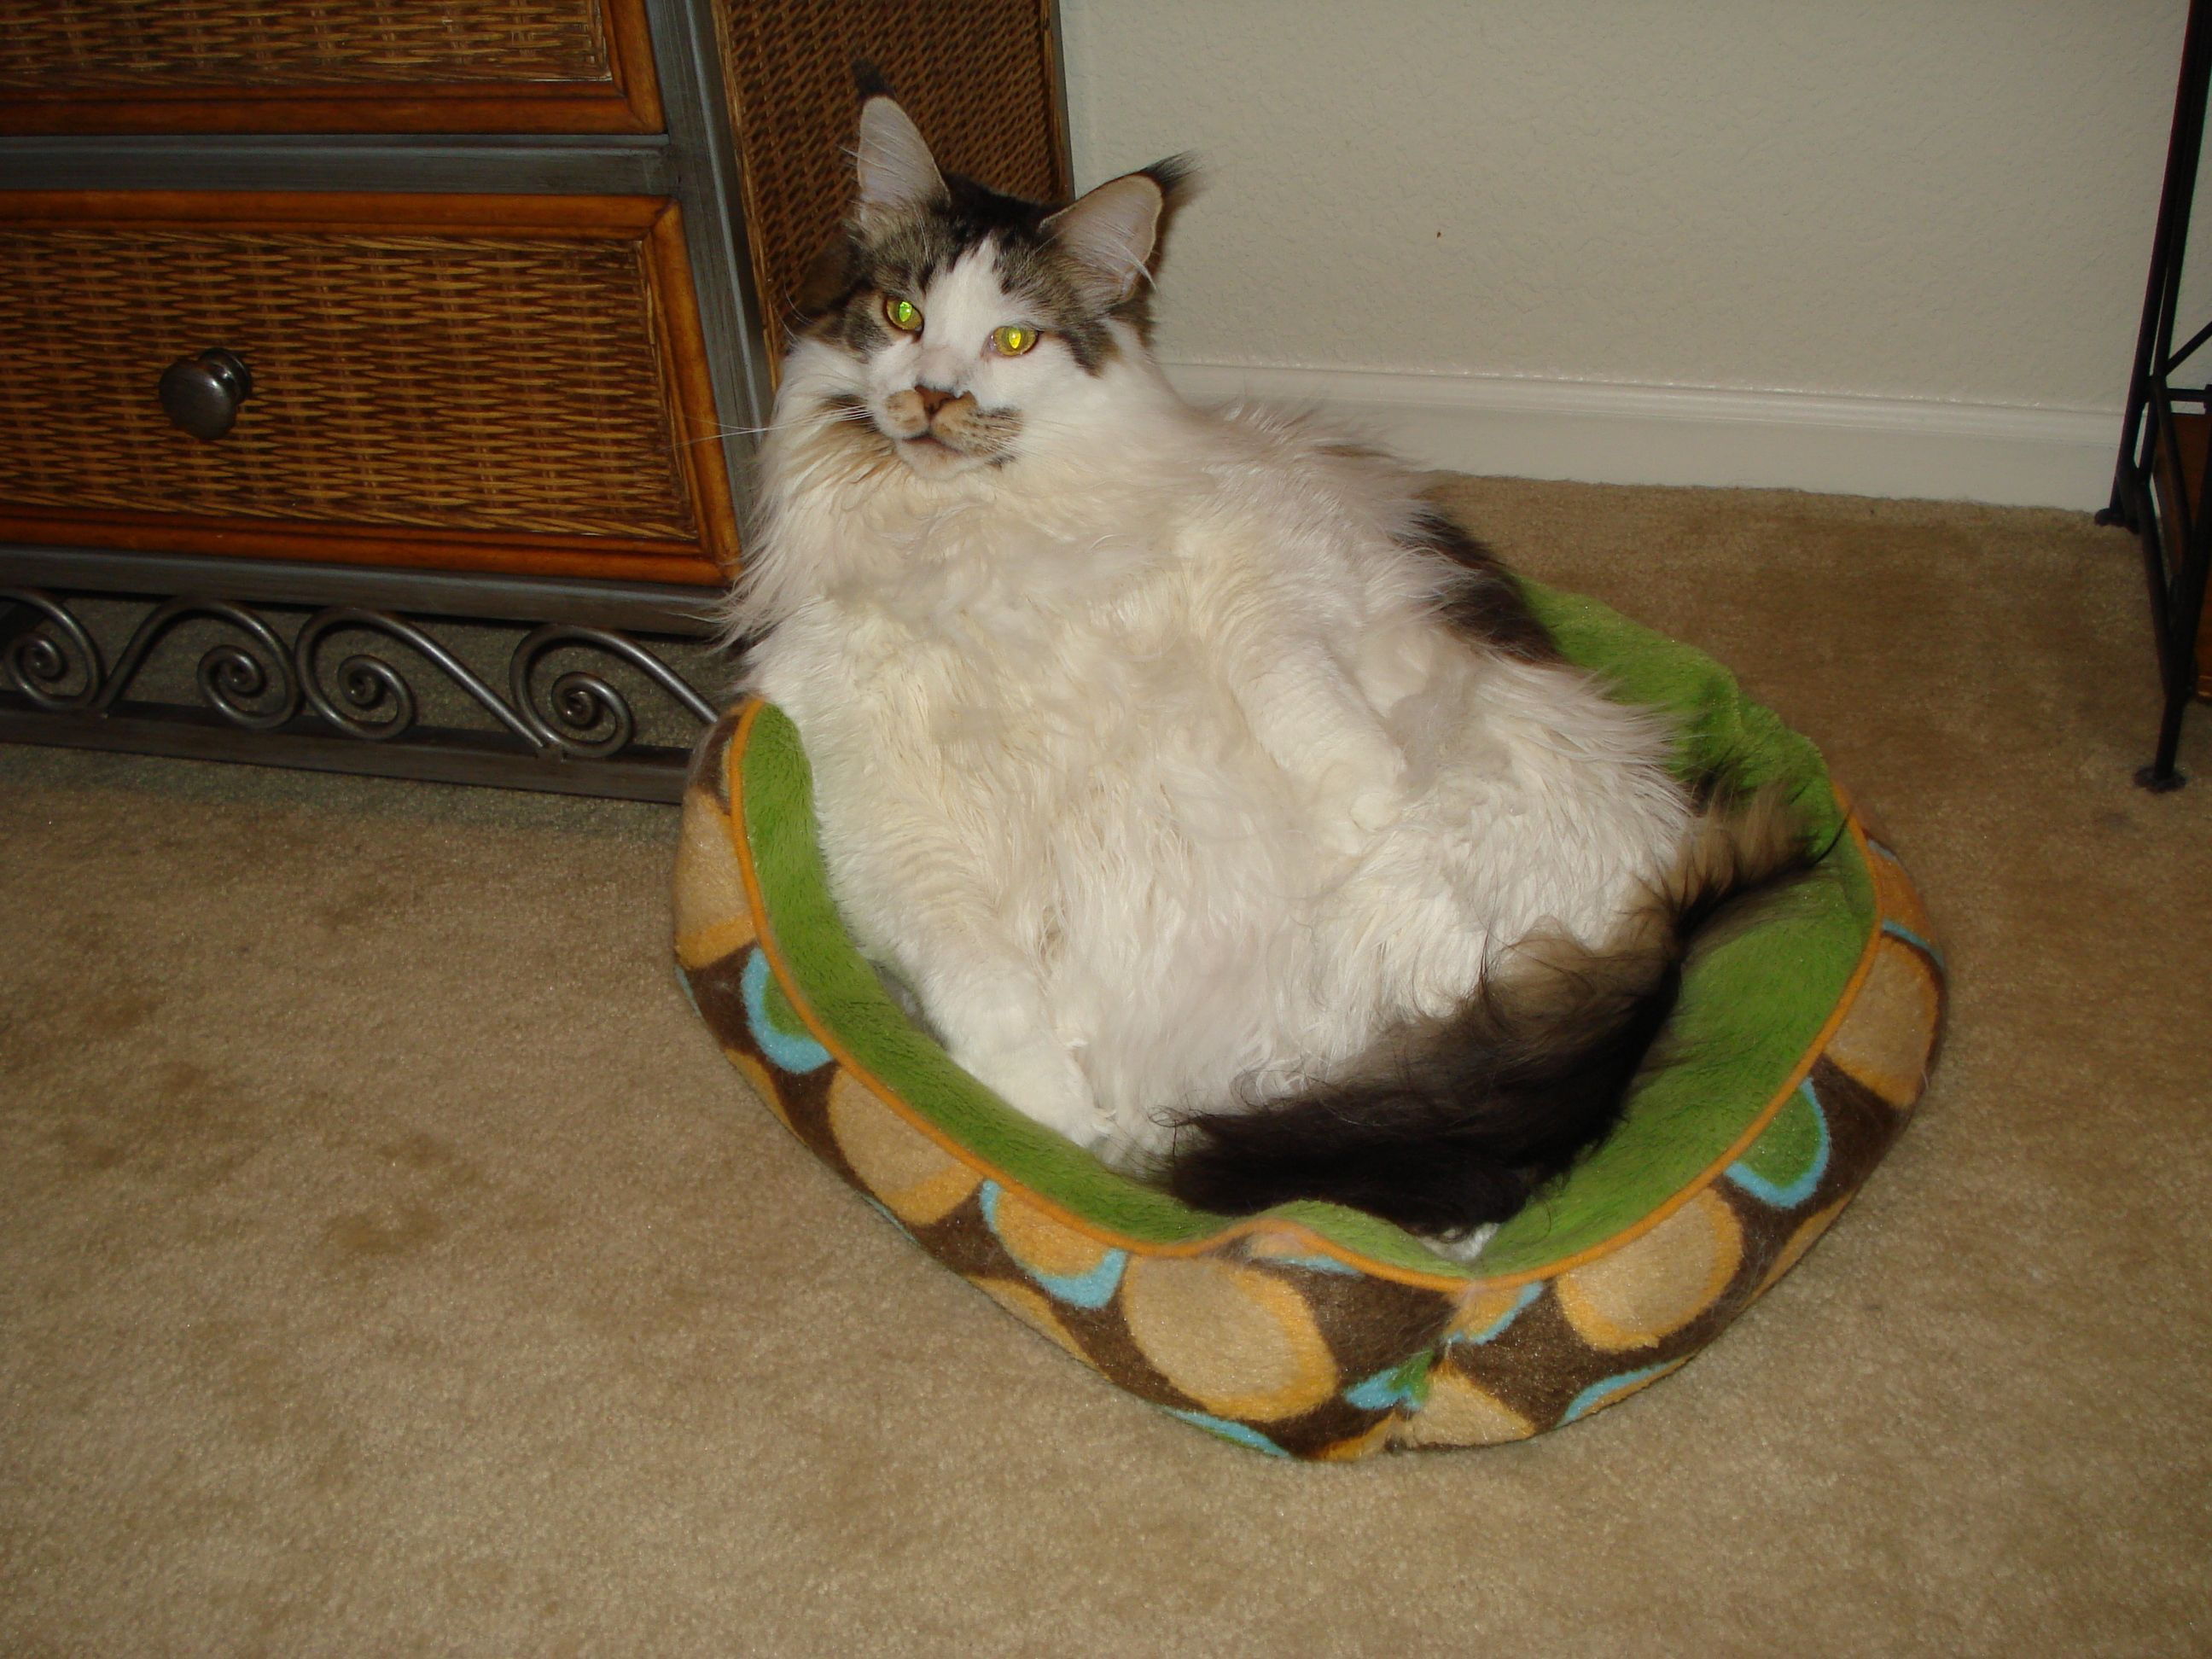 Maine Coons are awesome cats... really big breed and lots of fun!